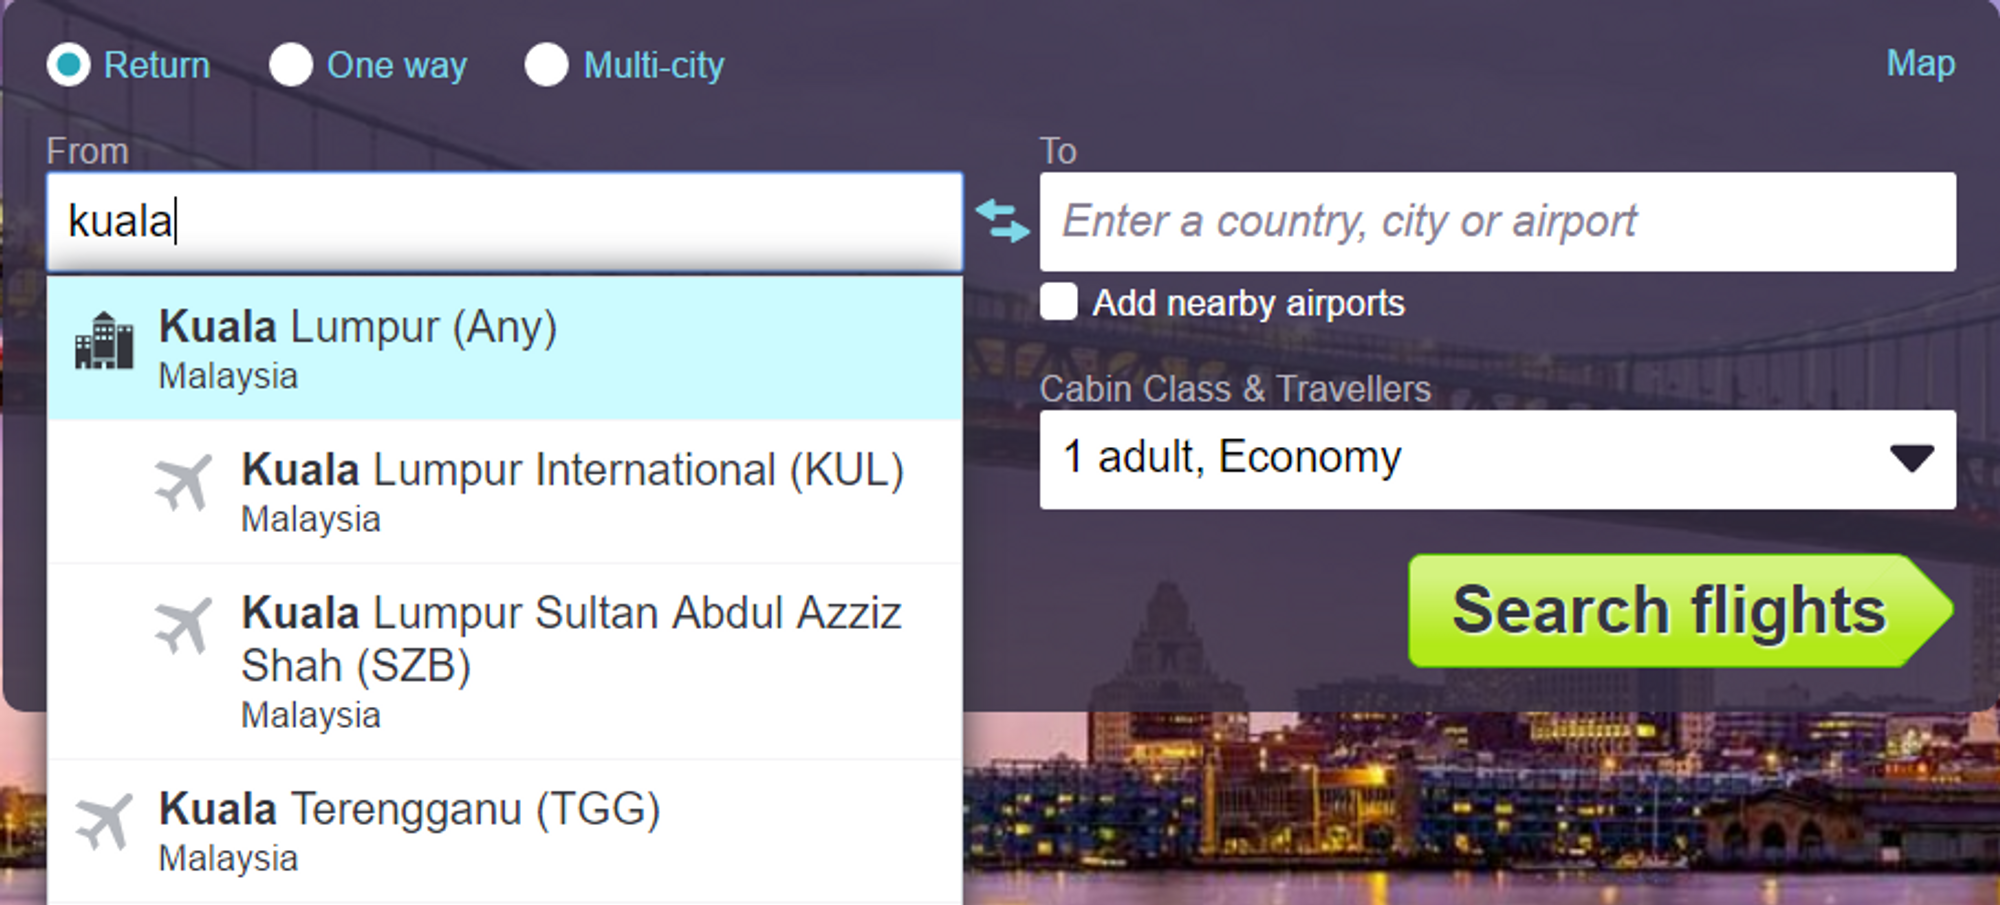 Search box on Skyscanner Malaysia home page